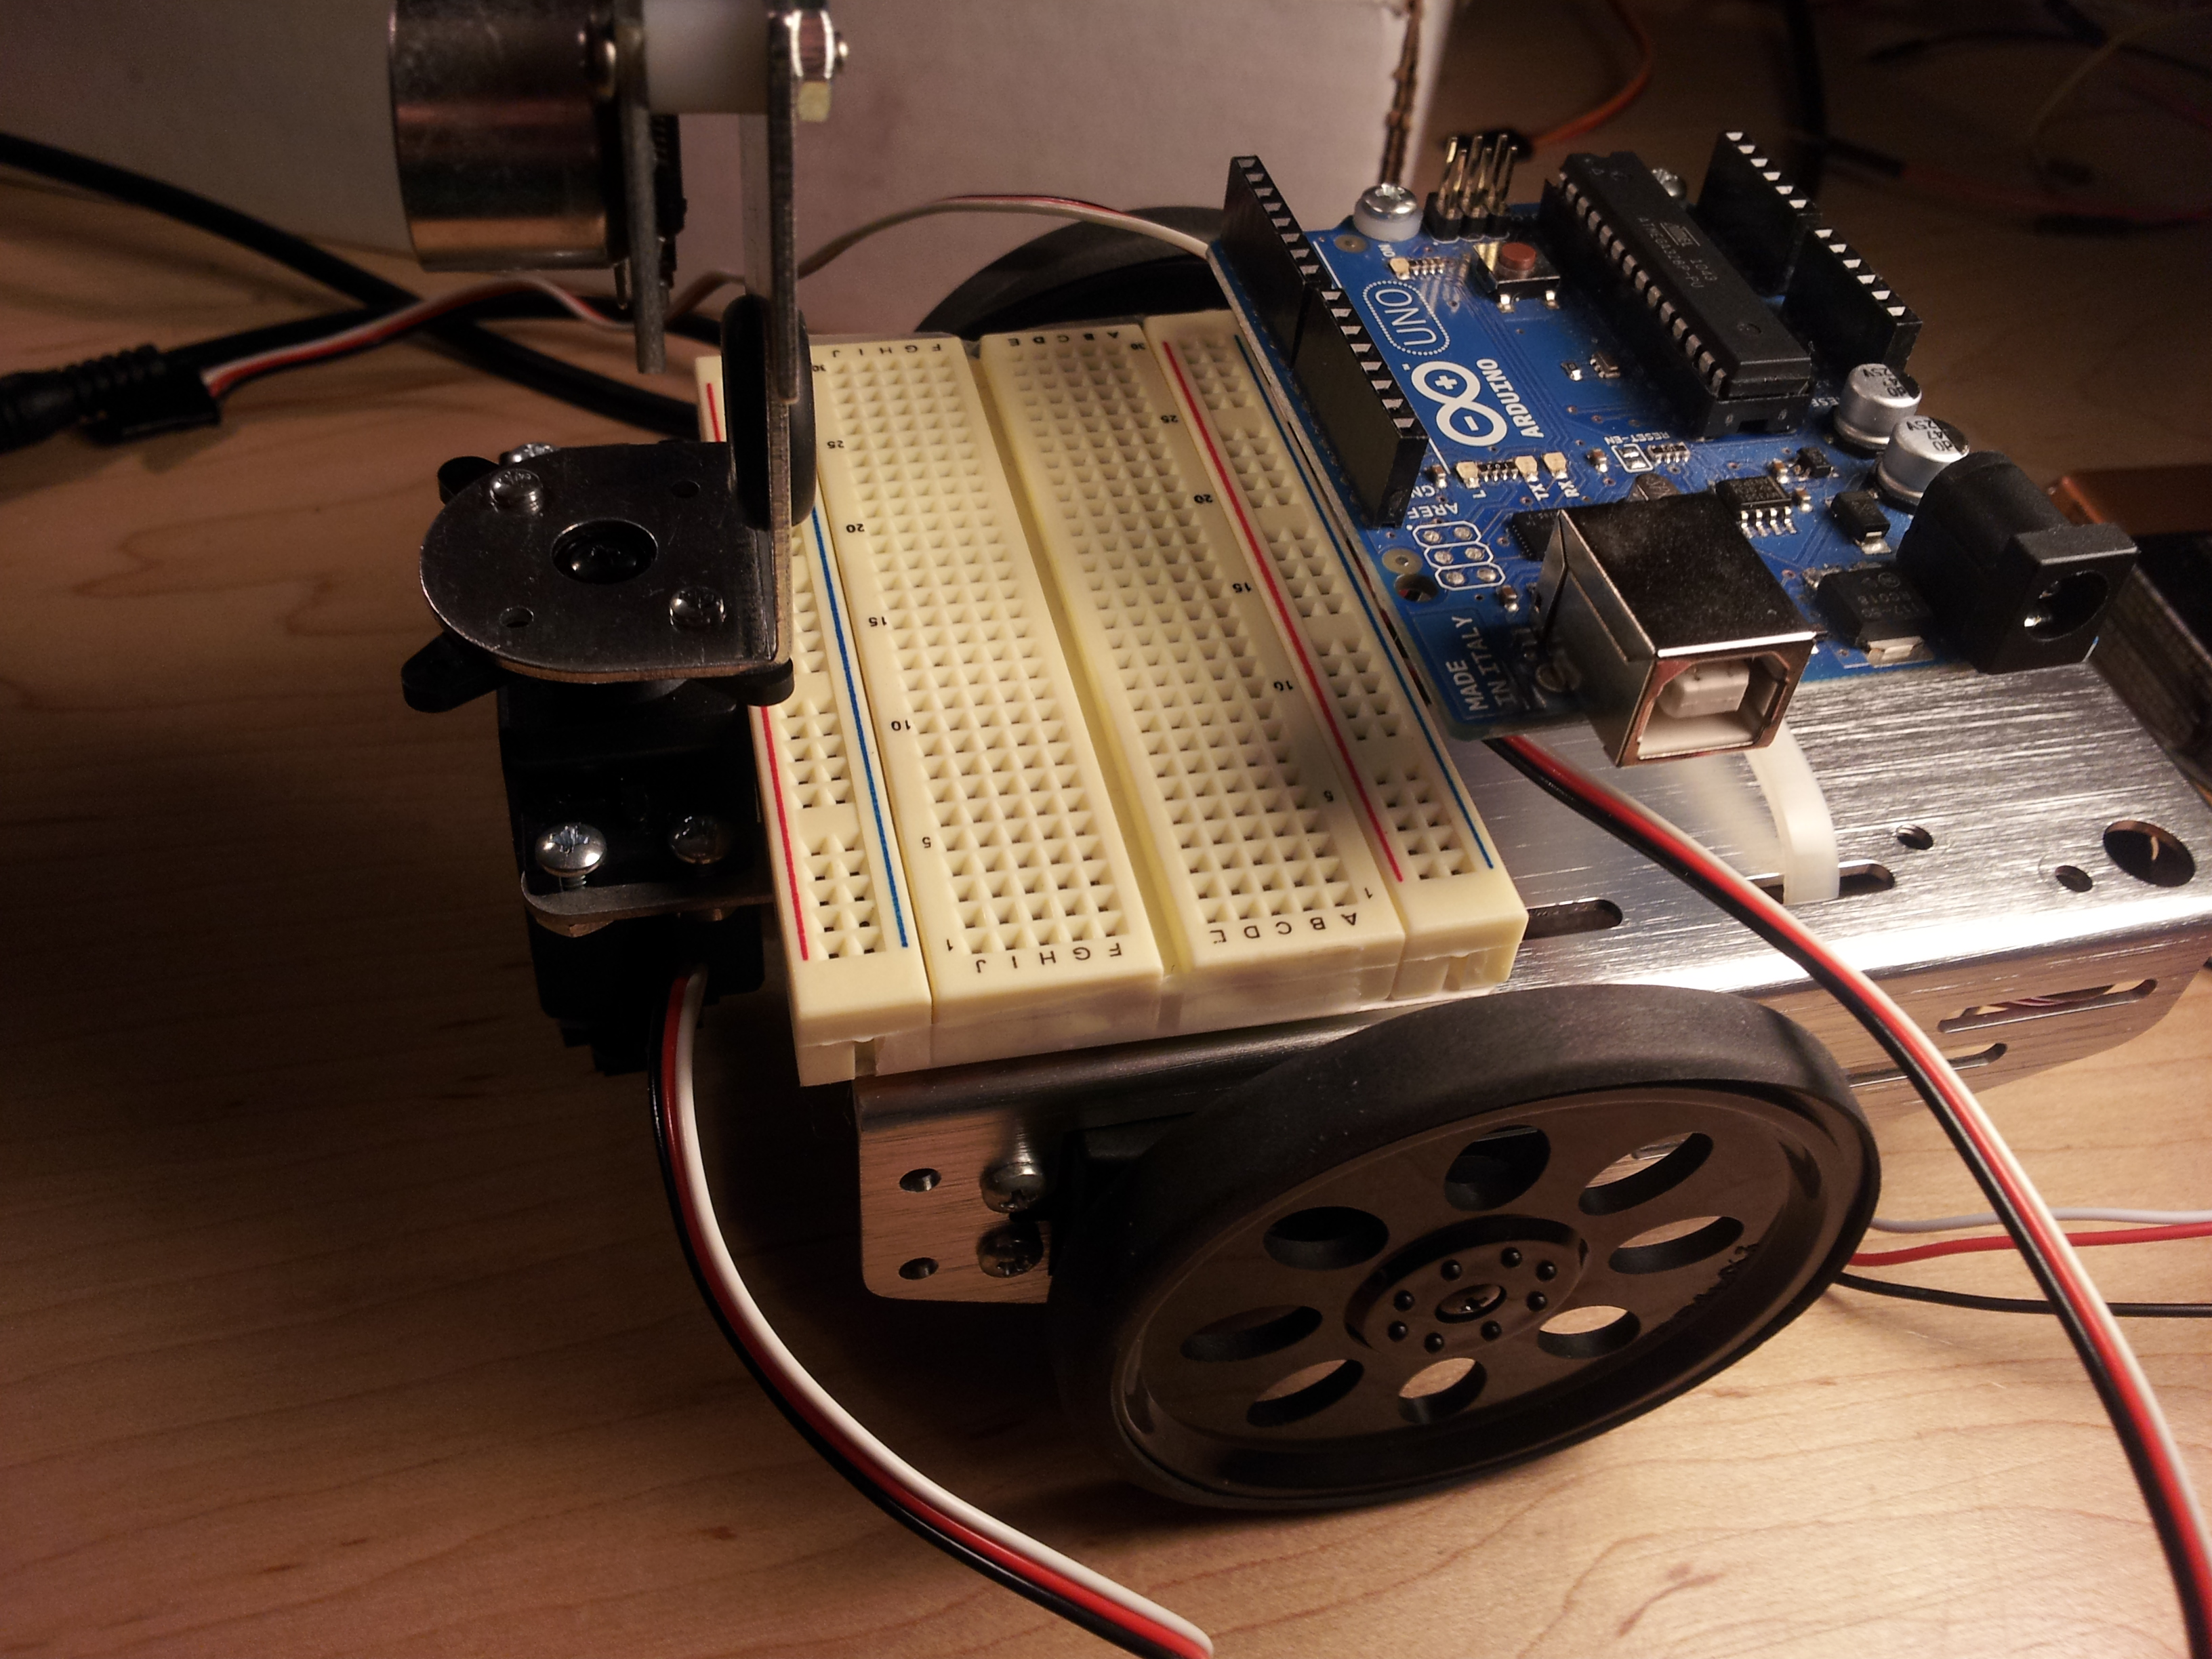 Picture of Breadboard